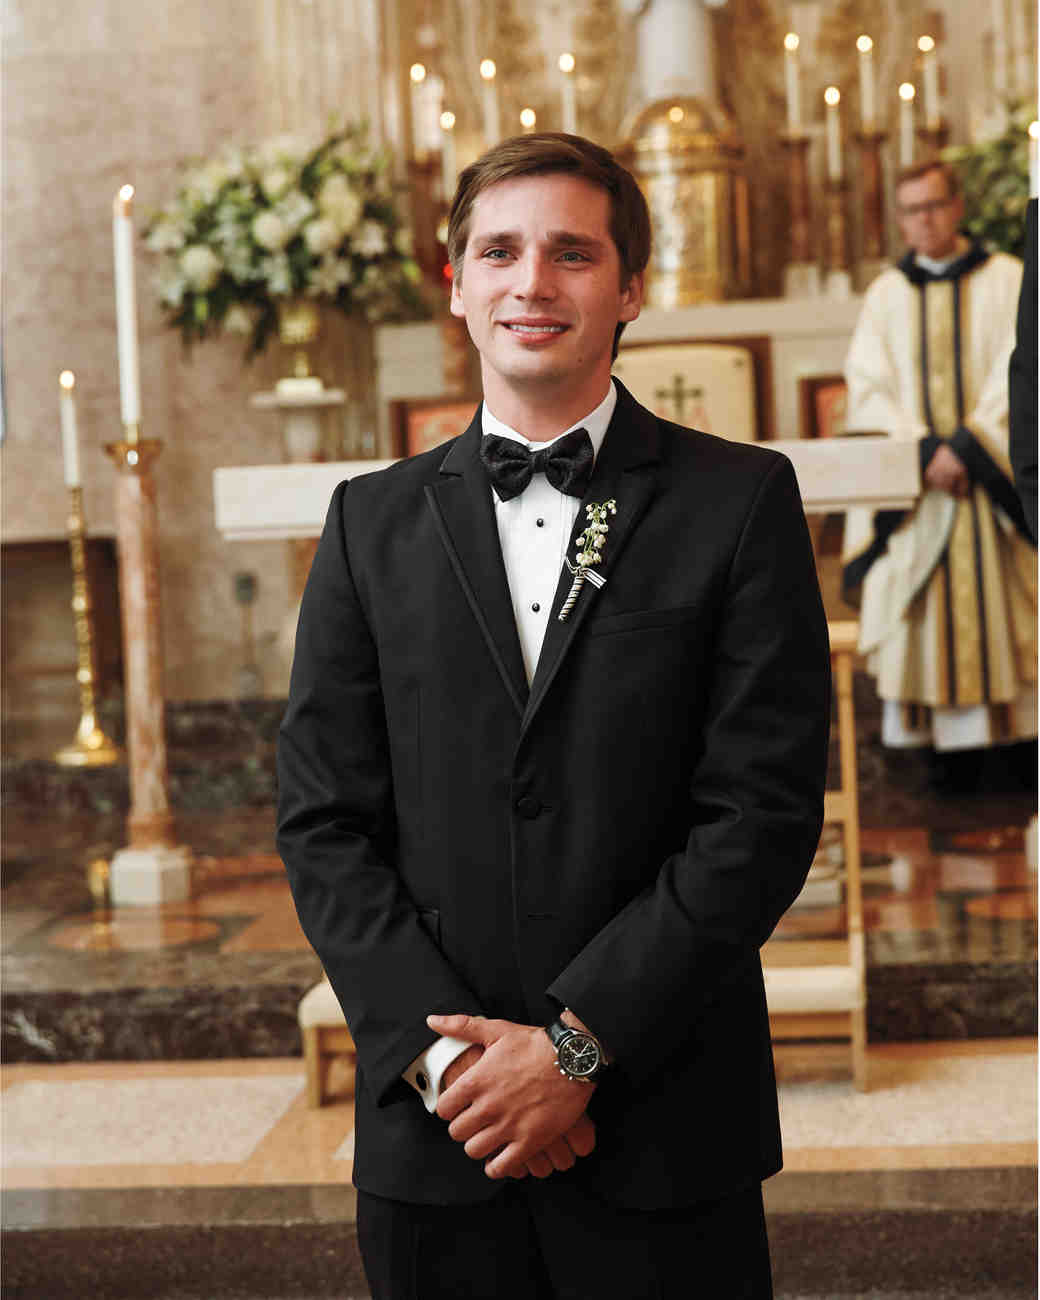 groom-altar-msw-05-24-13-0816-md110142.jpg